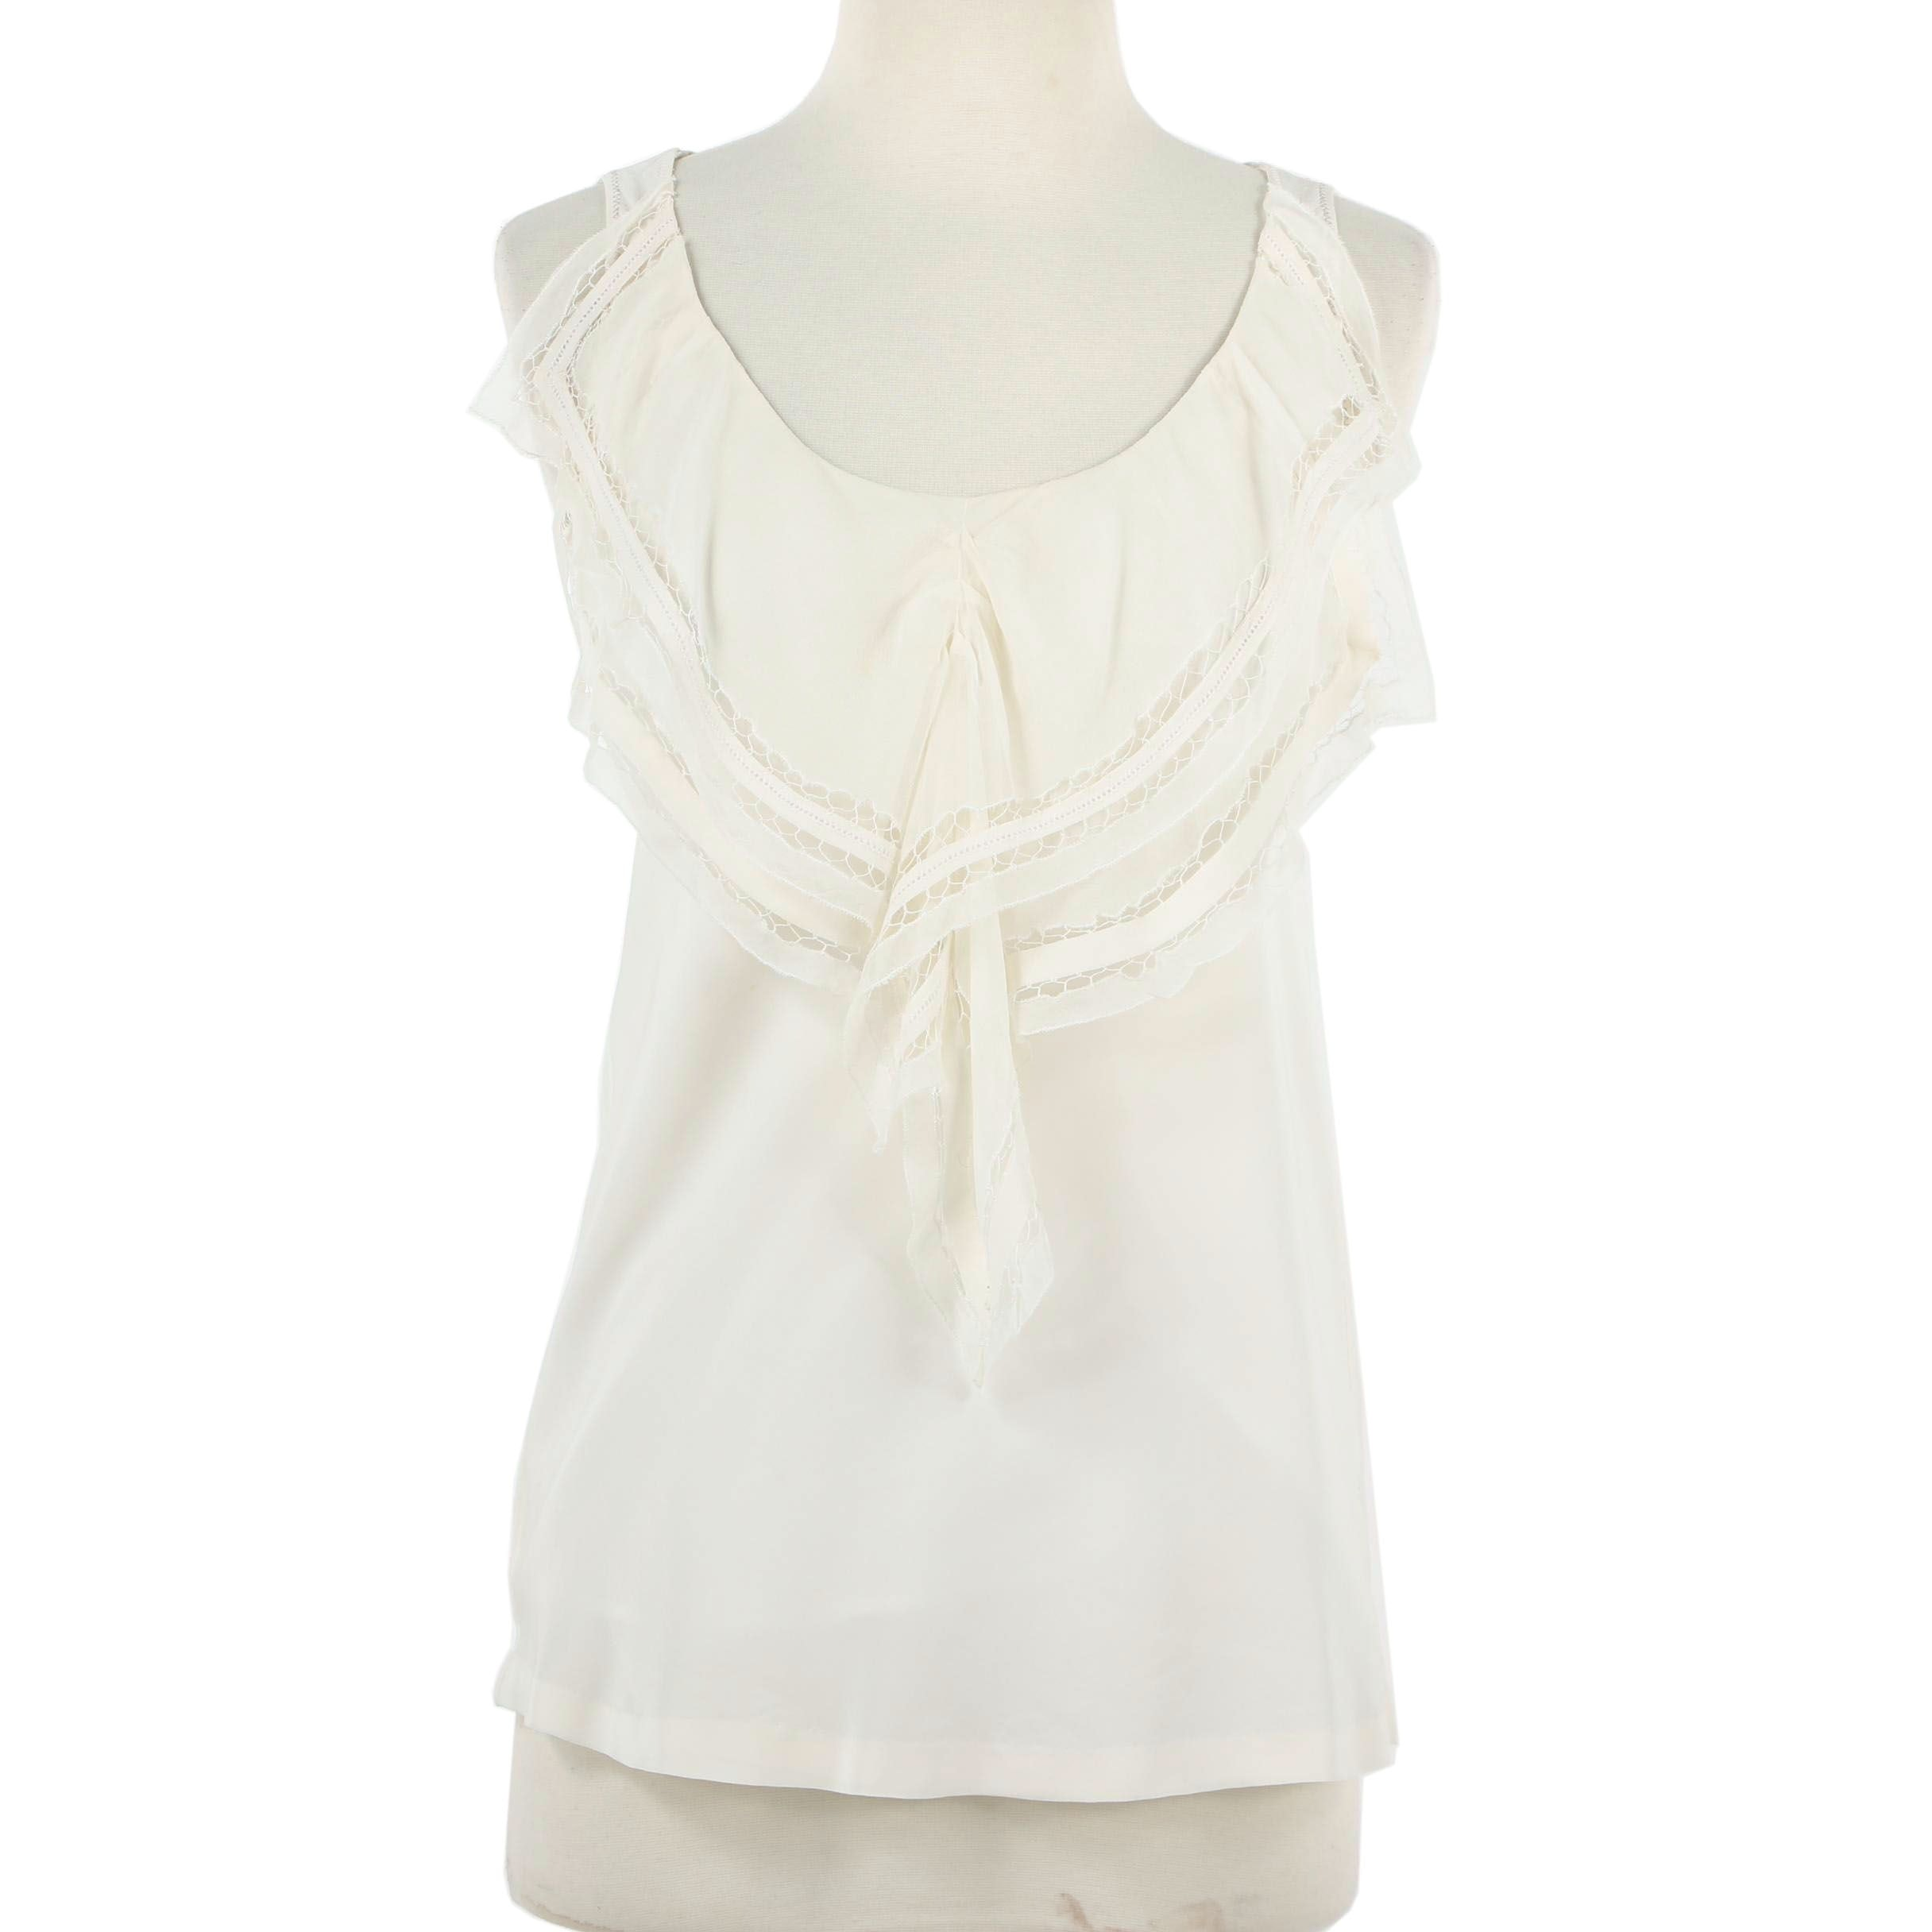 Hanii Y Off-White Silk Ruffled Bib Sleeveless Top